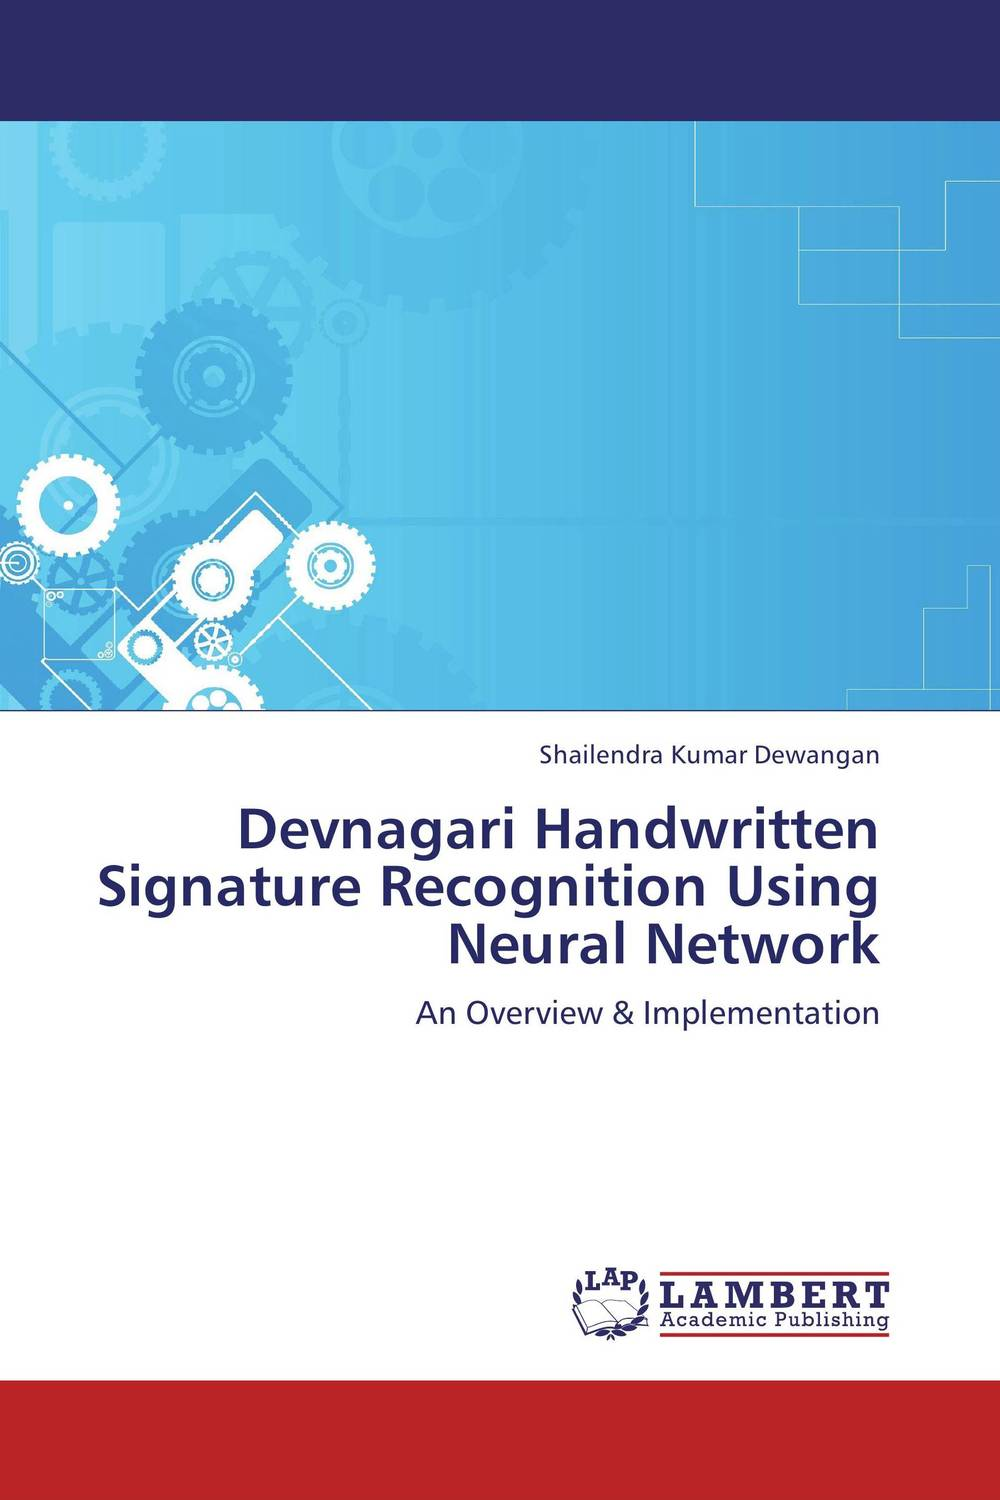 Devnagari Handwritten Signature Recognition Using Neural Network belousov a security features of banknotes and other documents methods of authentication manual денежные билеты бланки ценных бумаг и документов